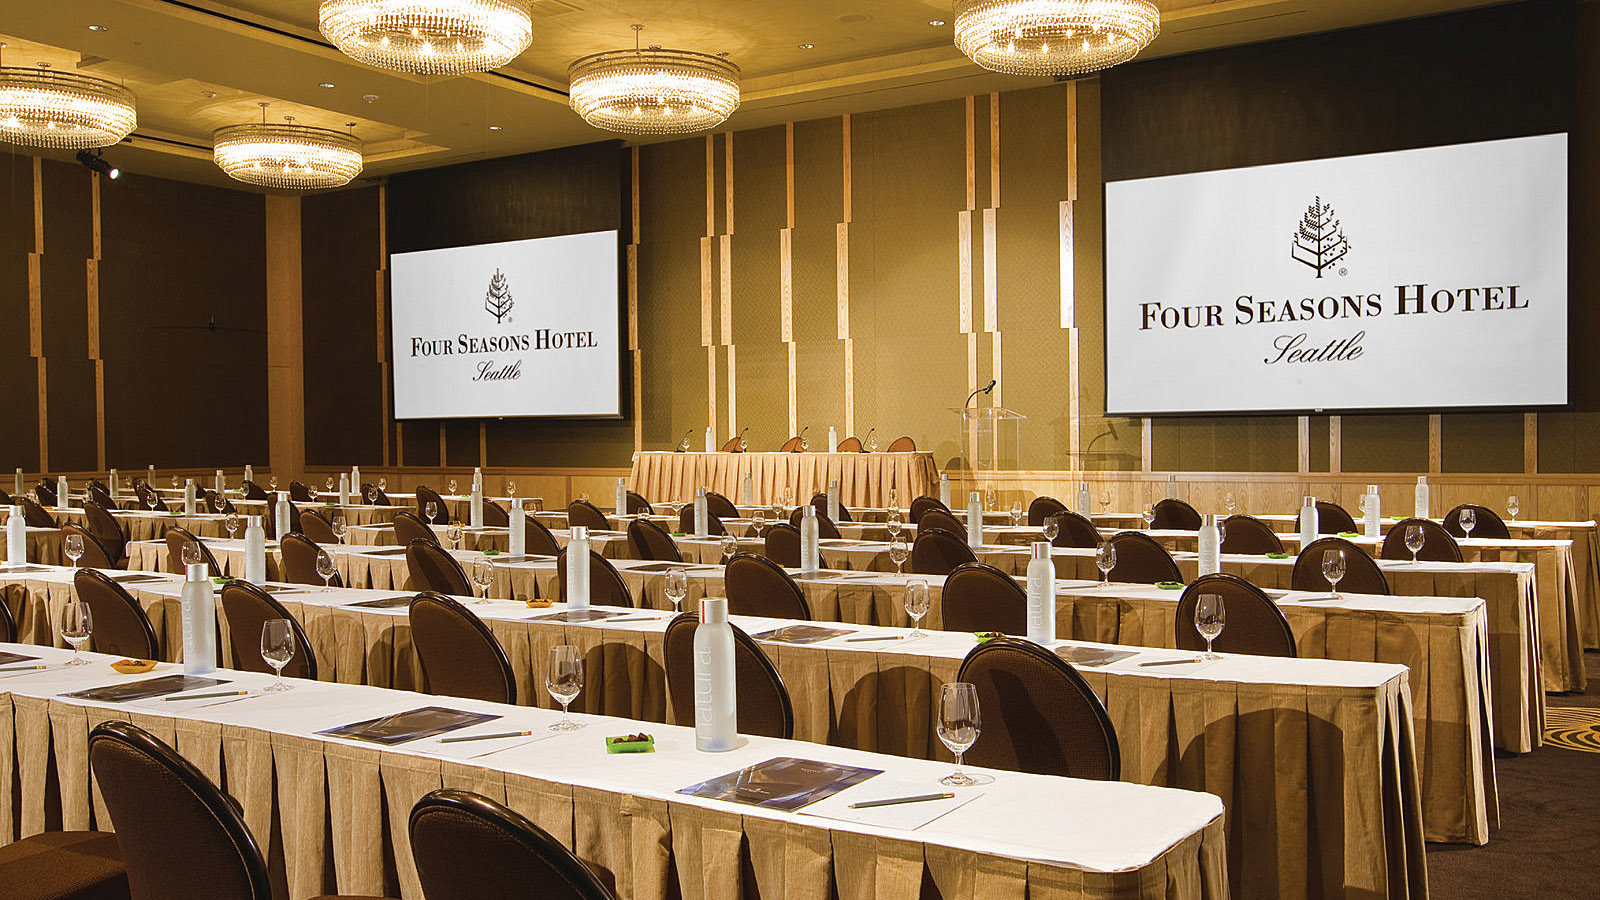 Four Seasons Hotel Function Rooms